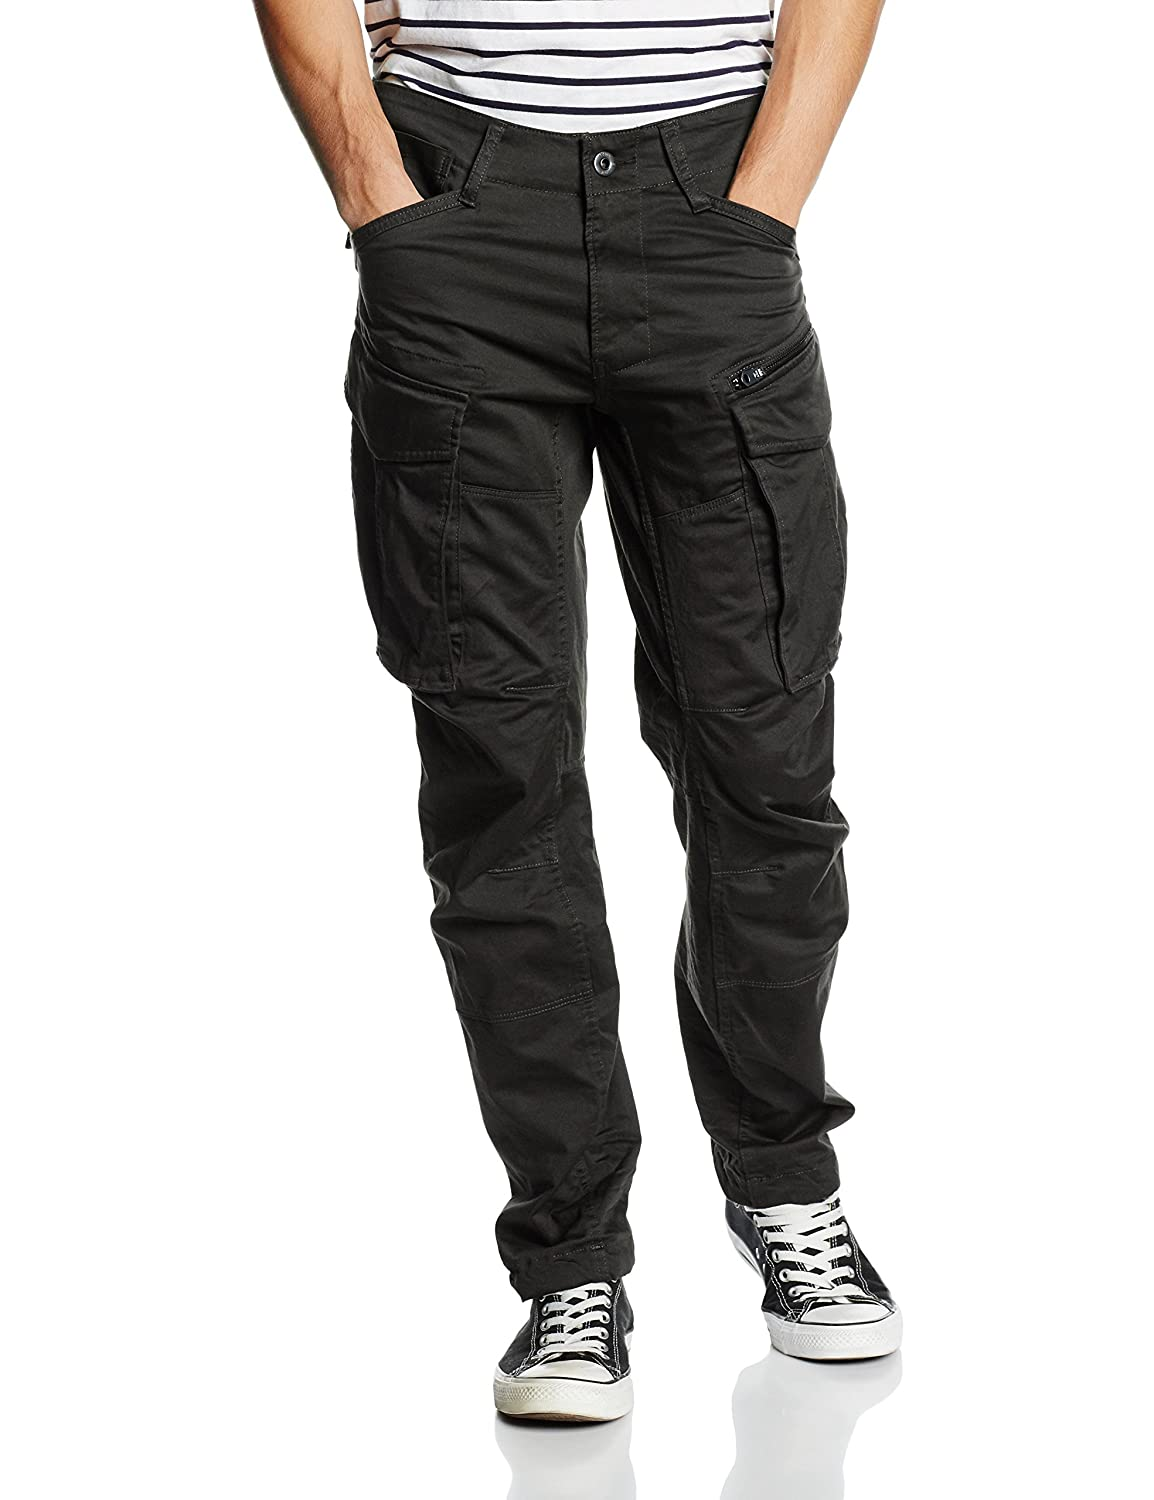 G-Star Raw Men's Rovic Zip 3D Tapered D02190-5126